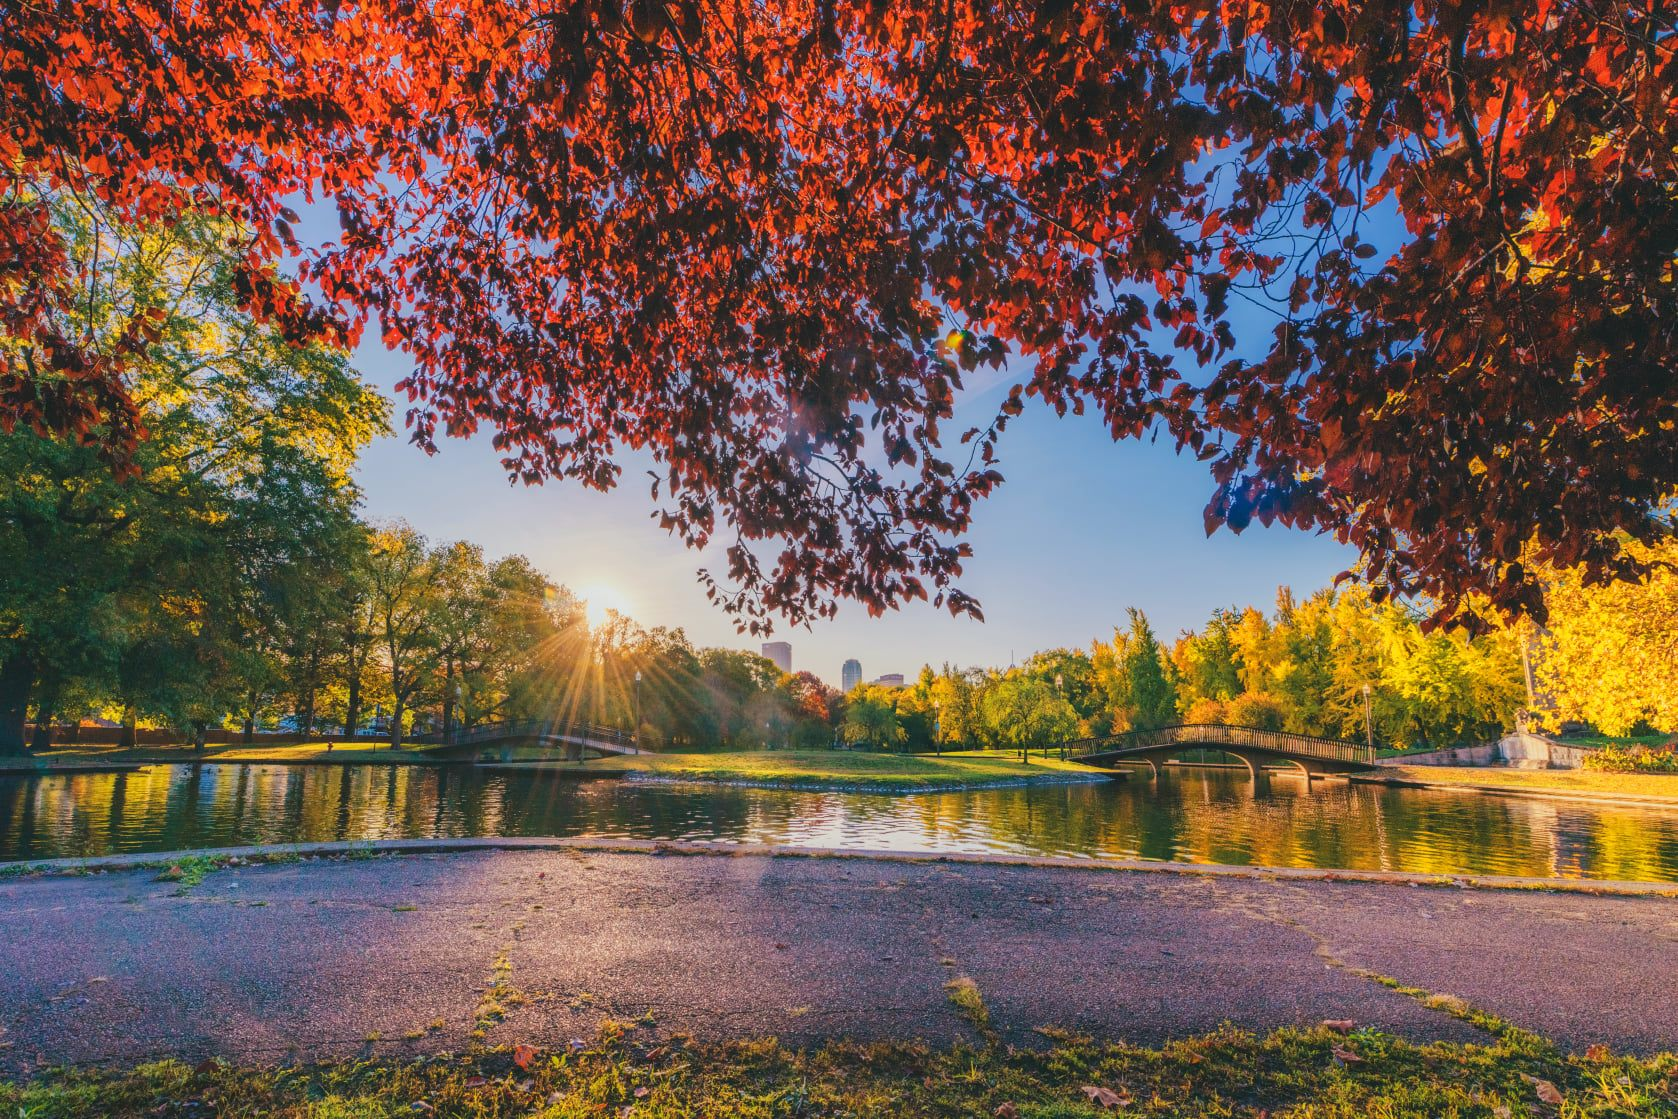 An image of a pond and trees at Allegheny Commons.